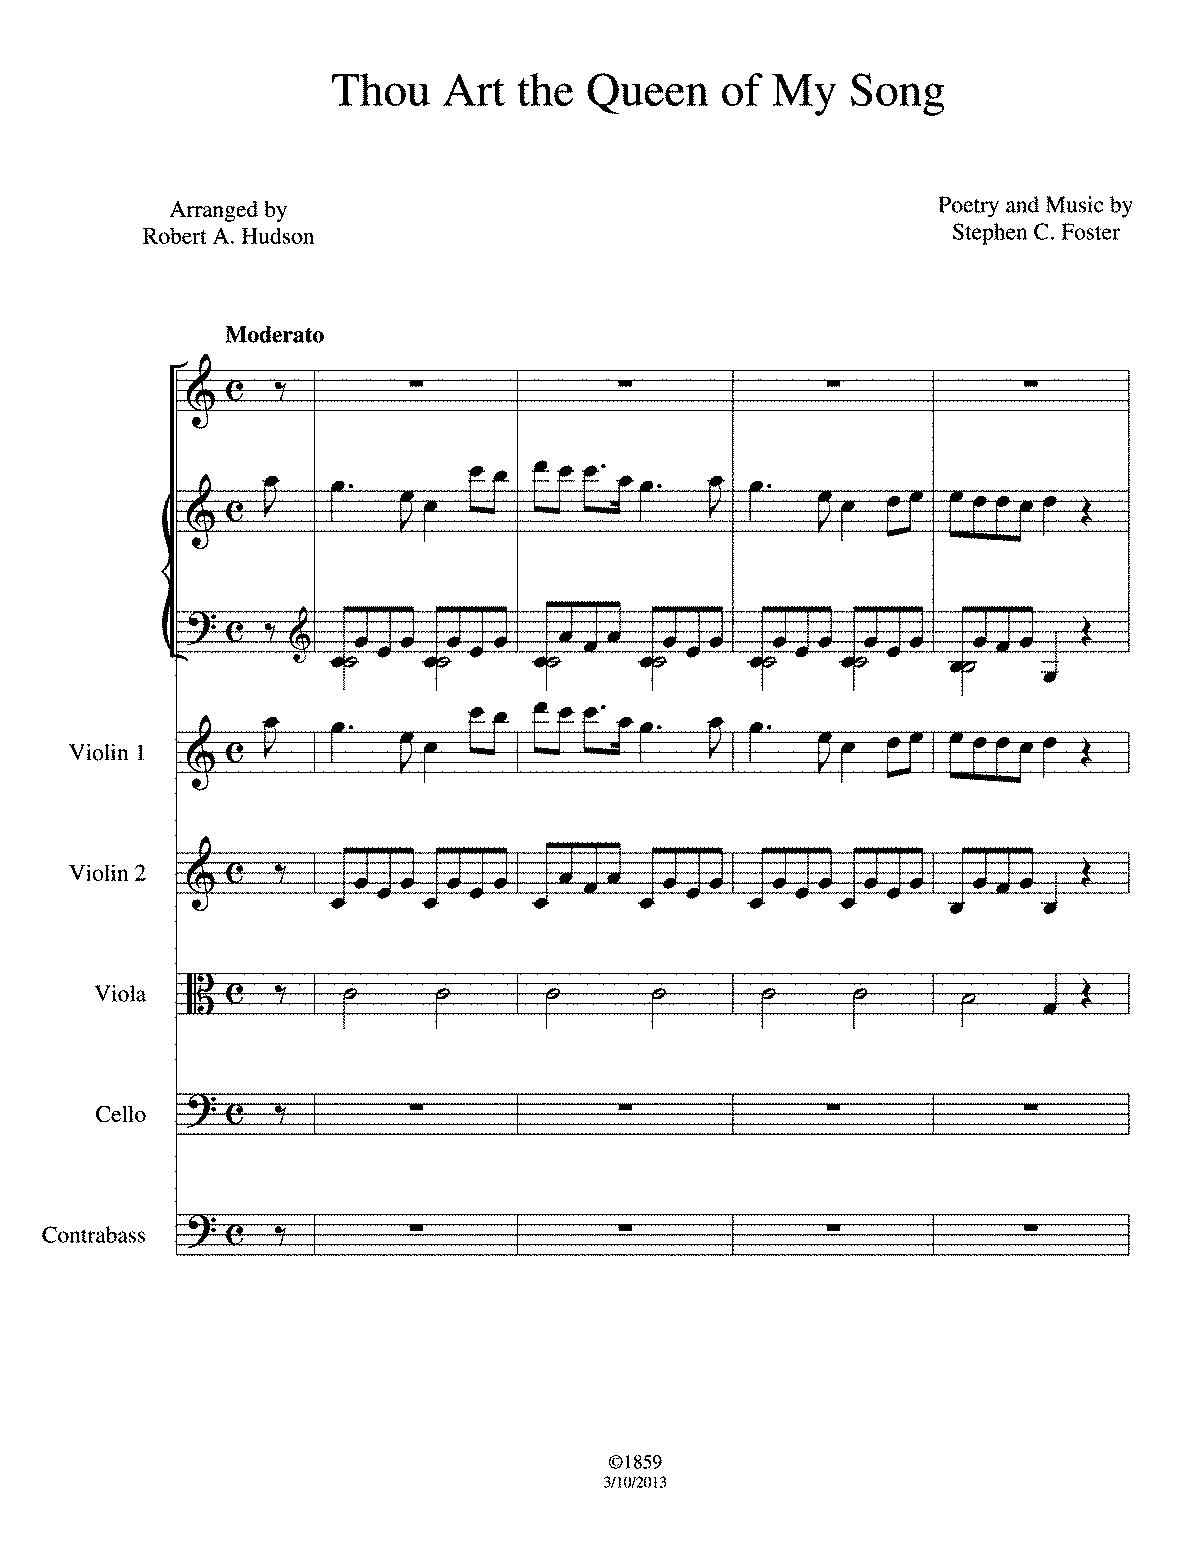 PMLP392262-Thou Art the Queen of My Song Conductores Score.pdf